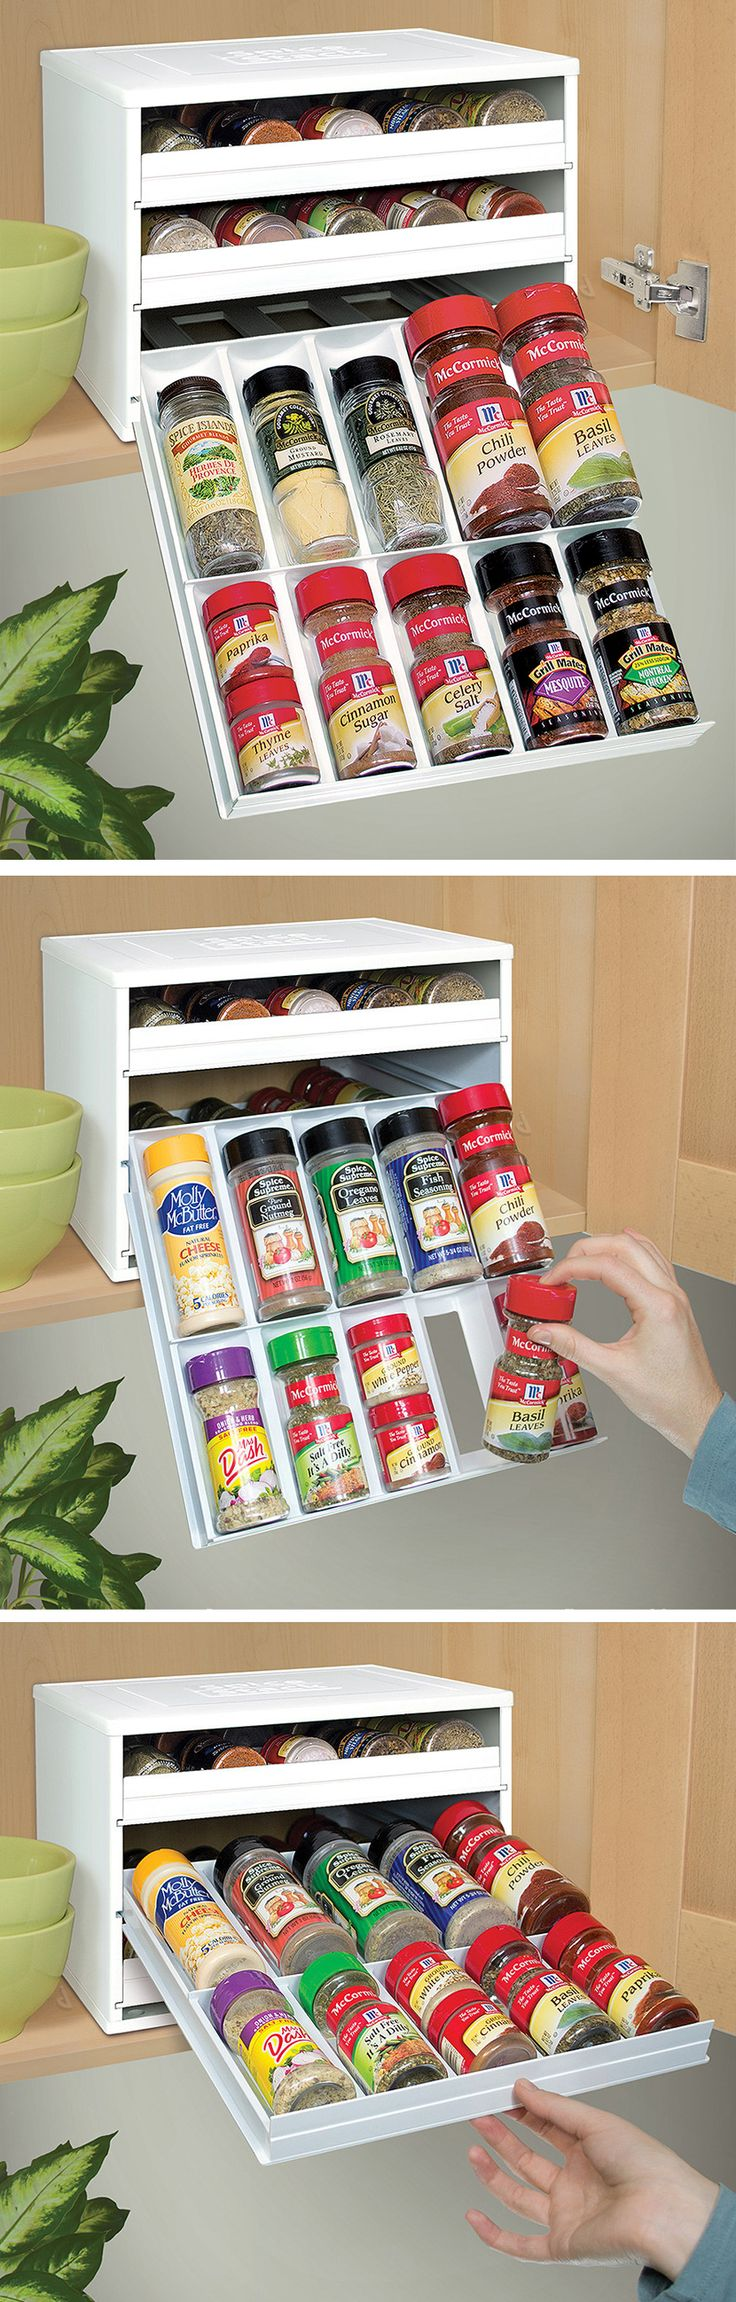 SpiceStack - Chef's Edition // a space-saving 30 bottle herb and spice organizer drawer rack. So clever, I need this in my kitchen! #product_design